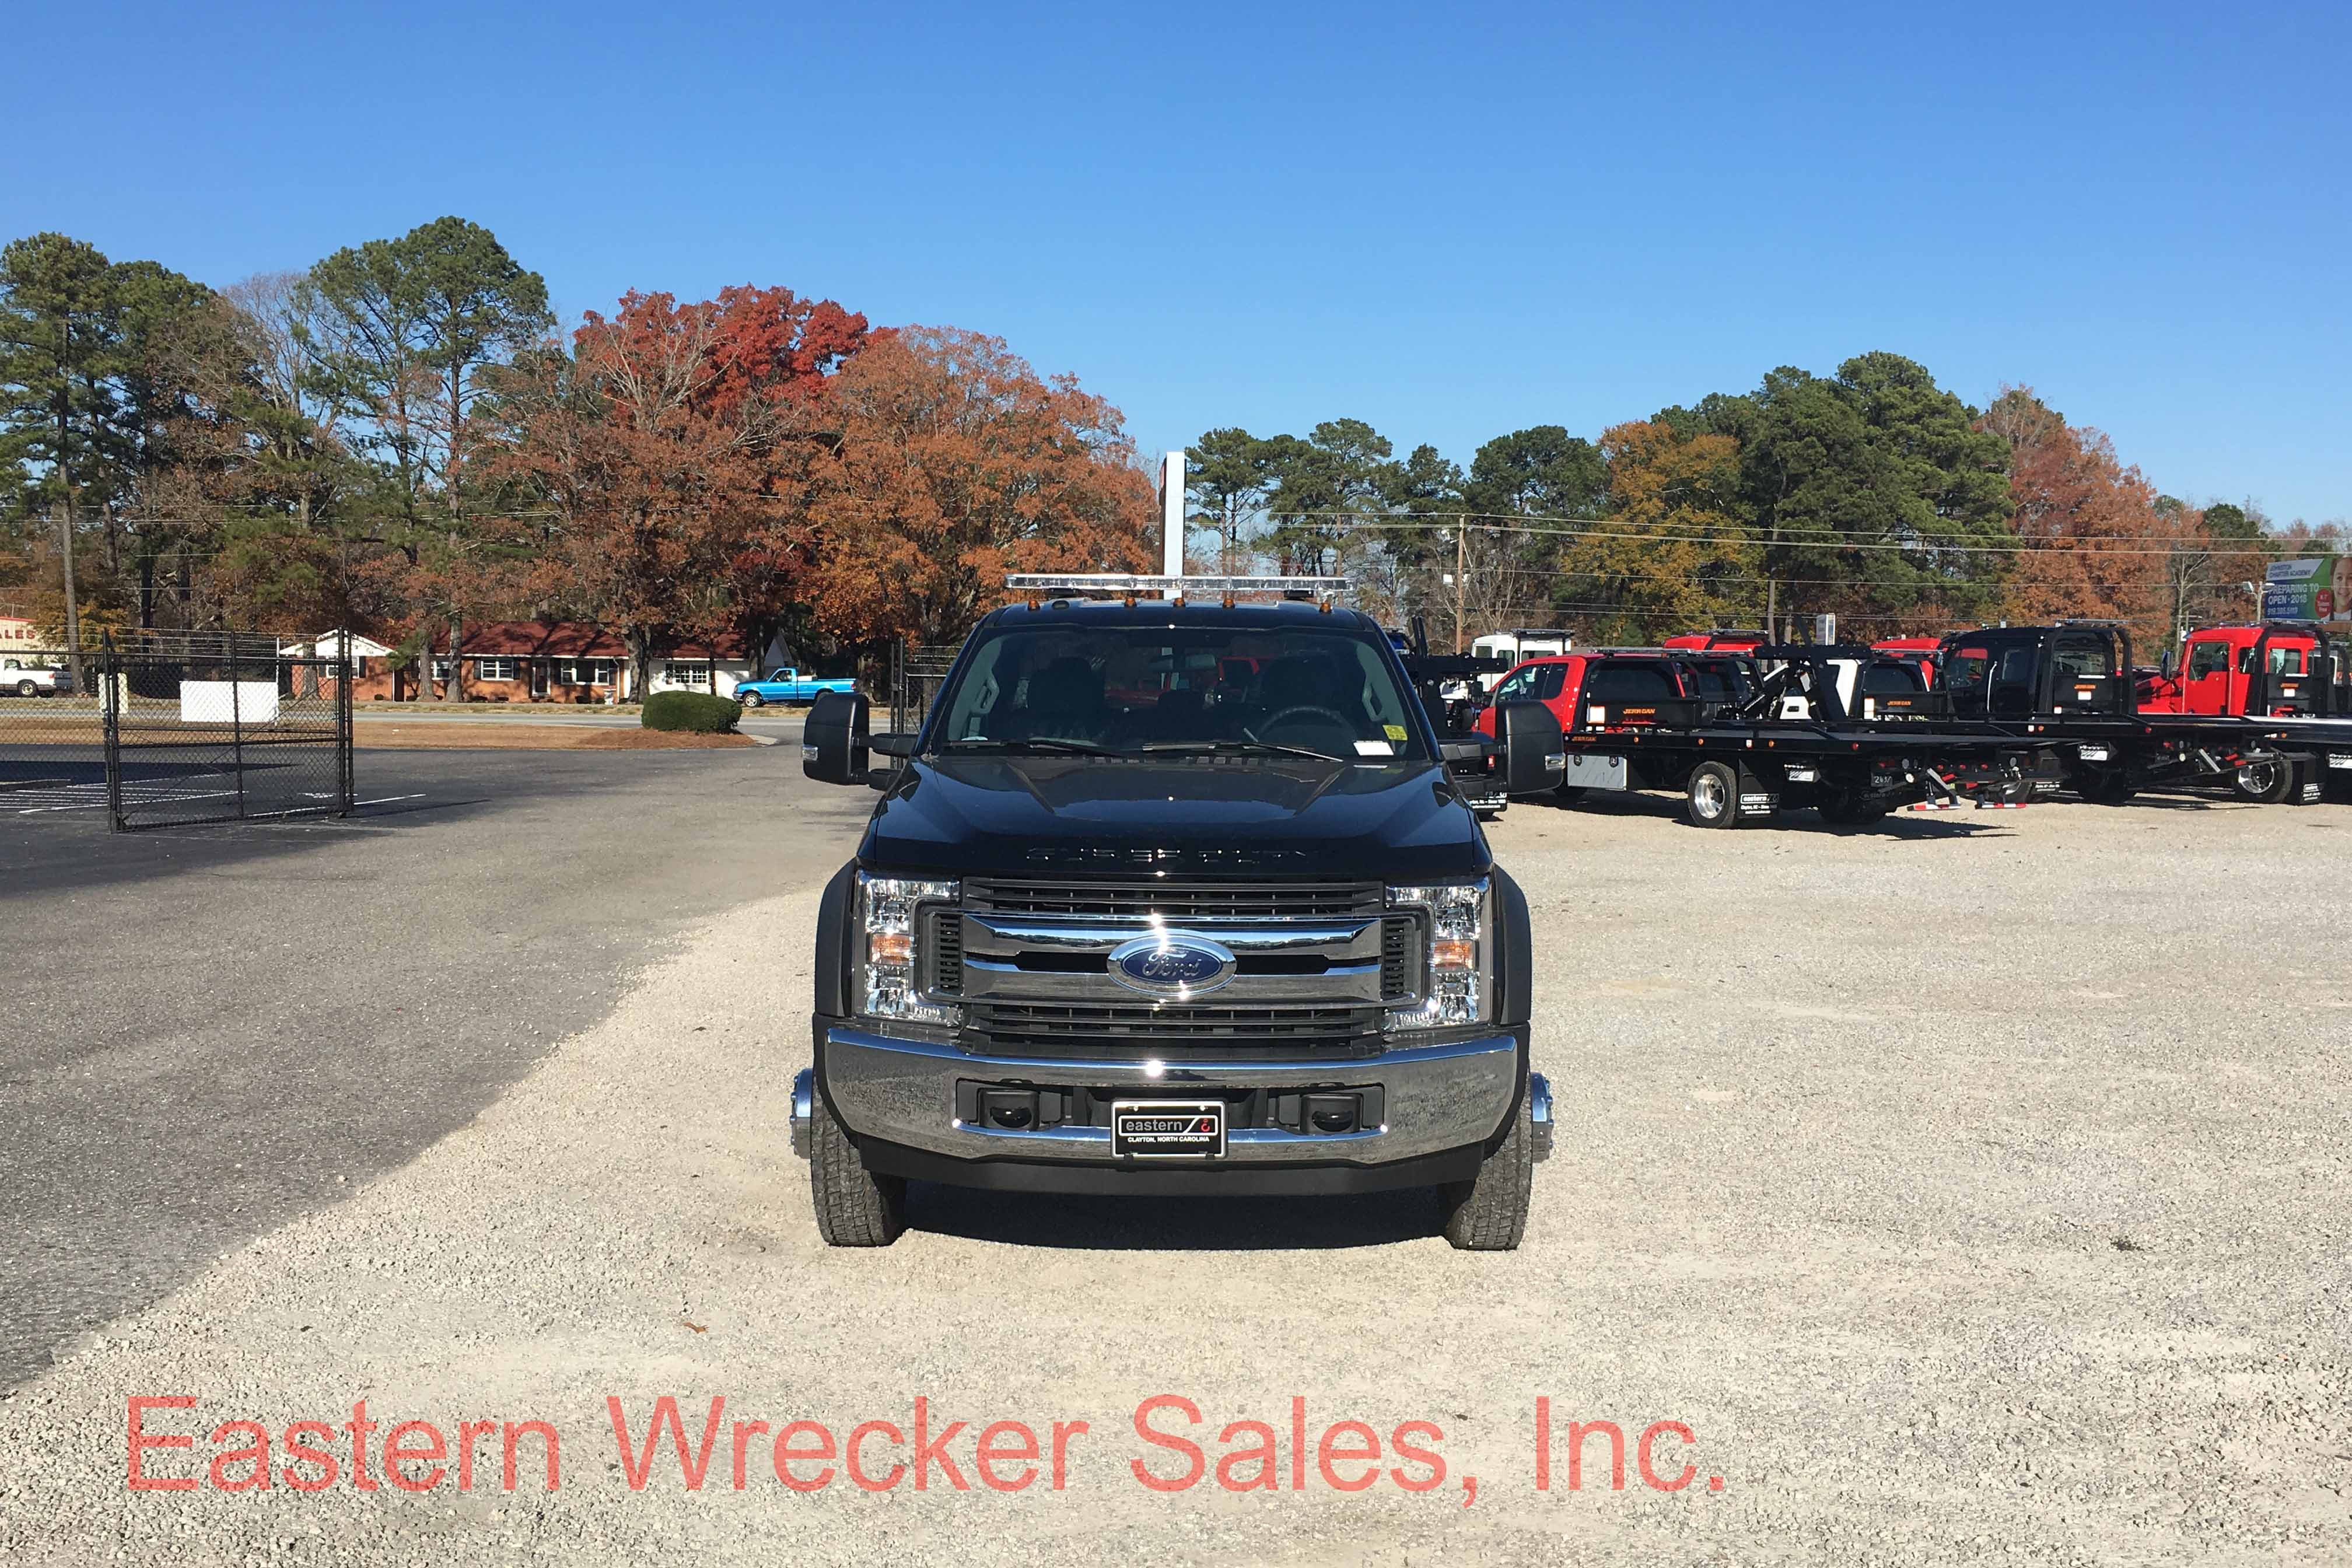 F Front Ford F Extended Cab Jerr Dan Carrier Aluminum Tow Truck For Sale Rollback on Used Extended Cab Rollback Wreckers Sale